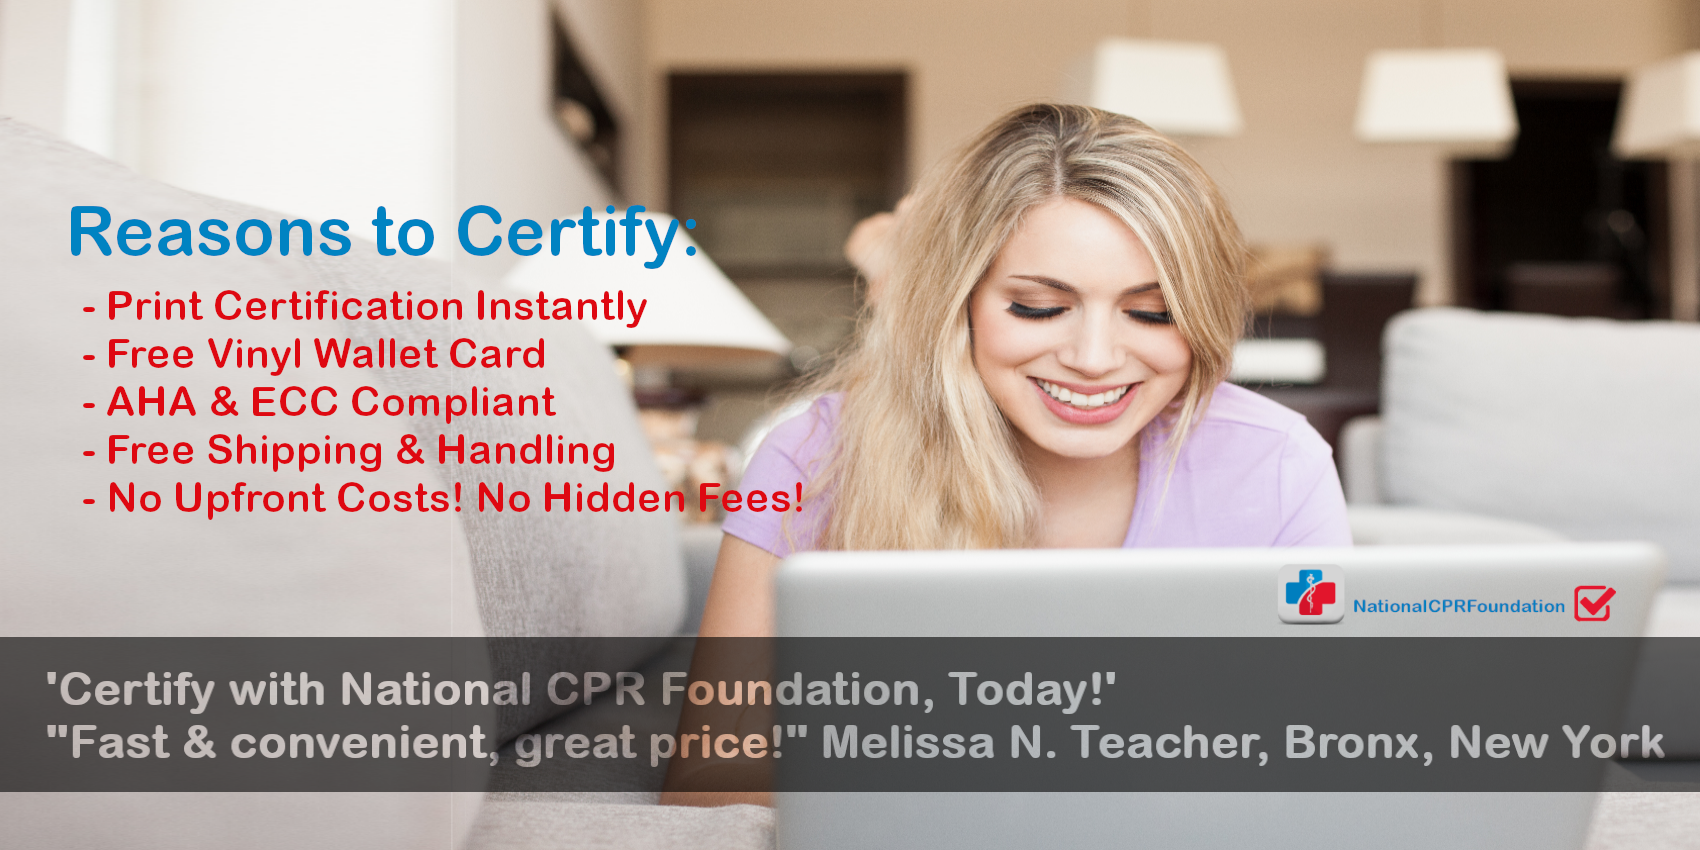 Online Aha Cpr Class Cpr Certification Online First Aid Training Class